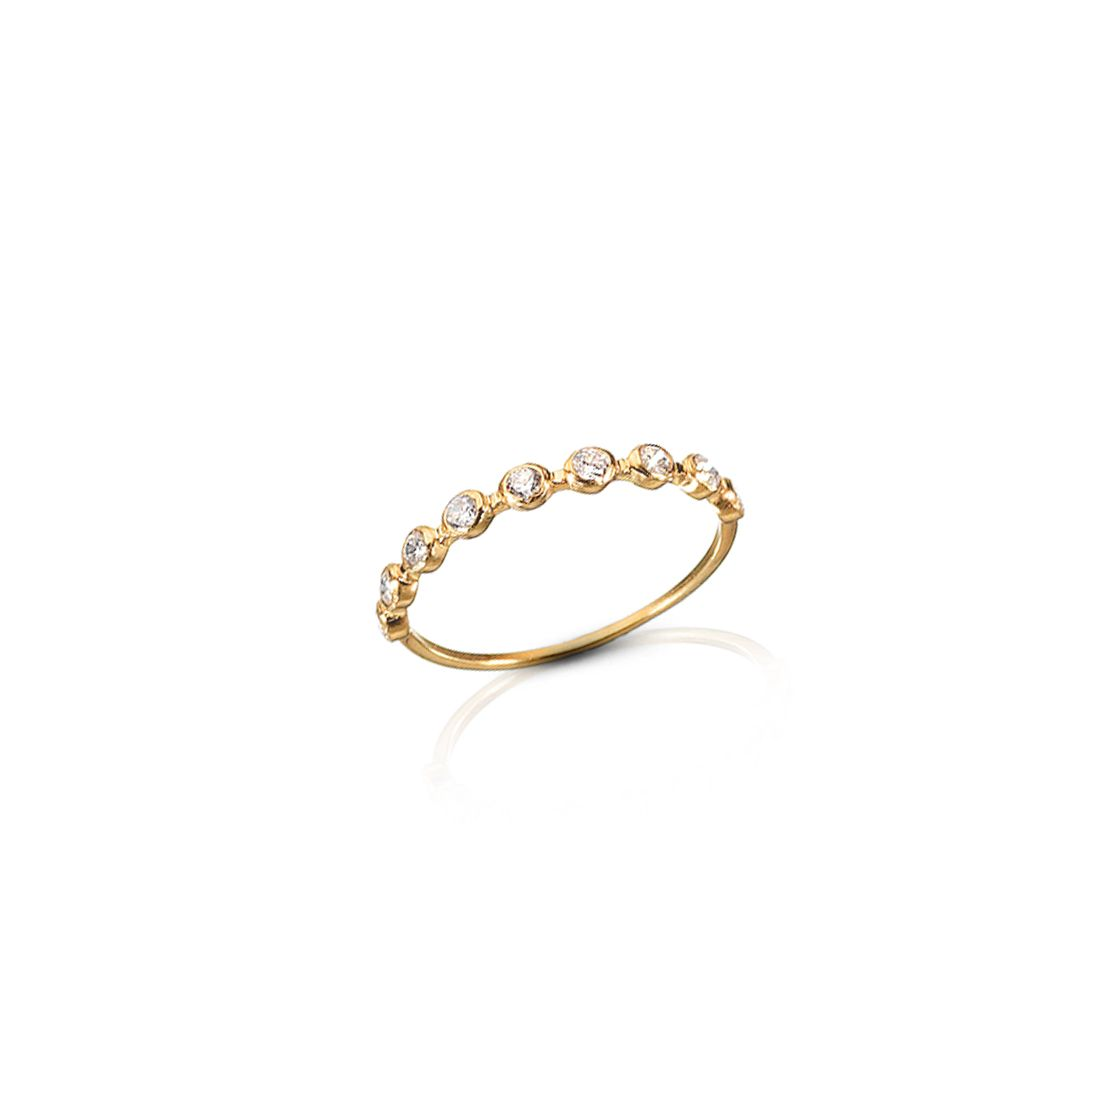 Simple and elegant gold band with zircon stones.